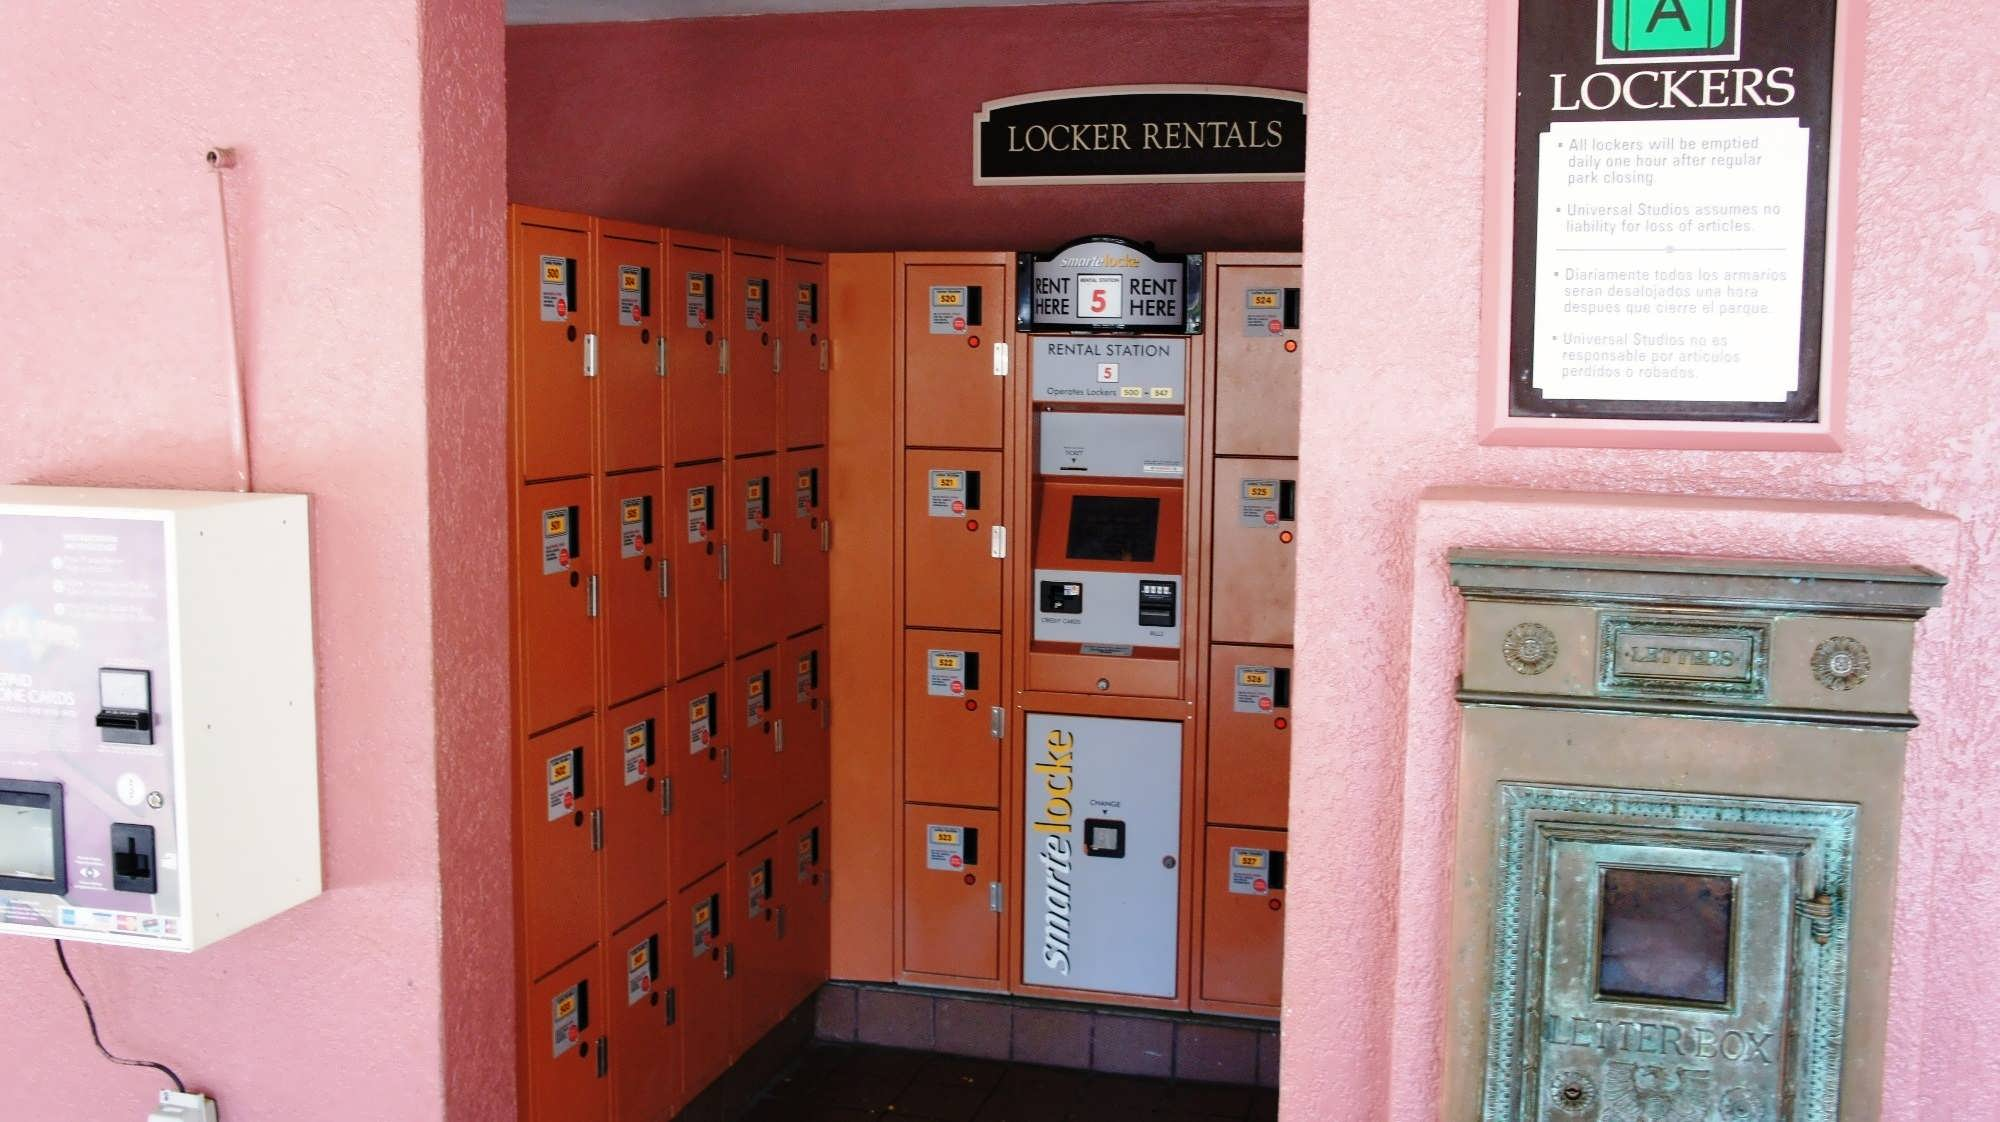 USF lockers – Set 2. Inside the park, to the left by the stroller rental.